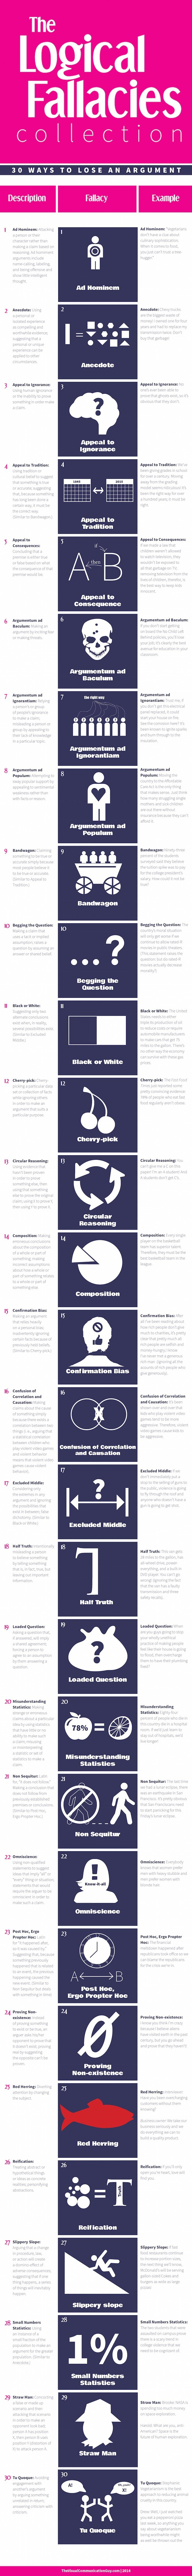 The Best Infographics of 2015 (So Far) - Lose an argument #Infographic